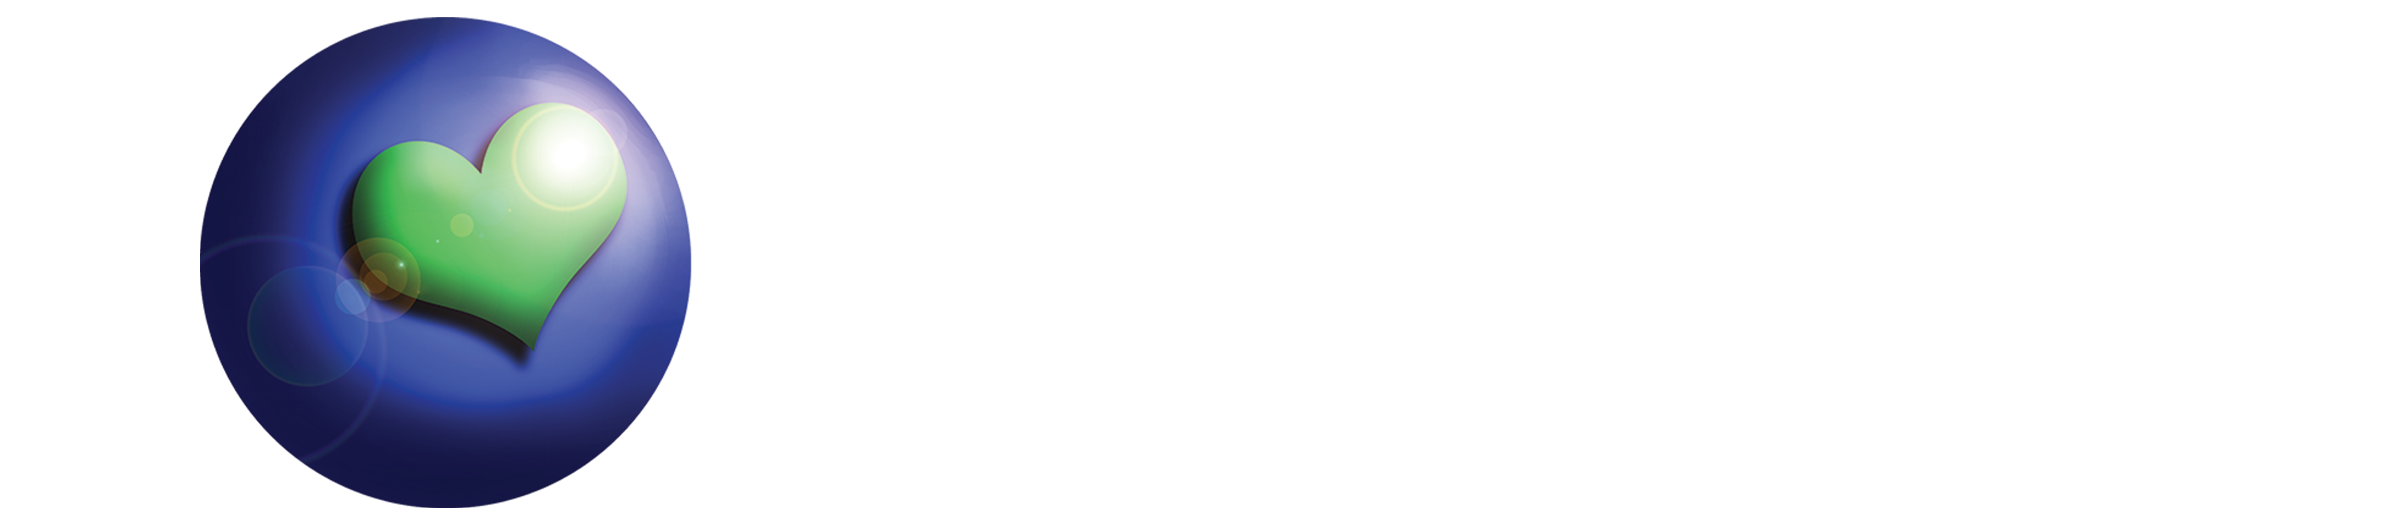 audition page header.png